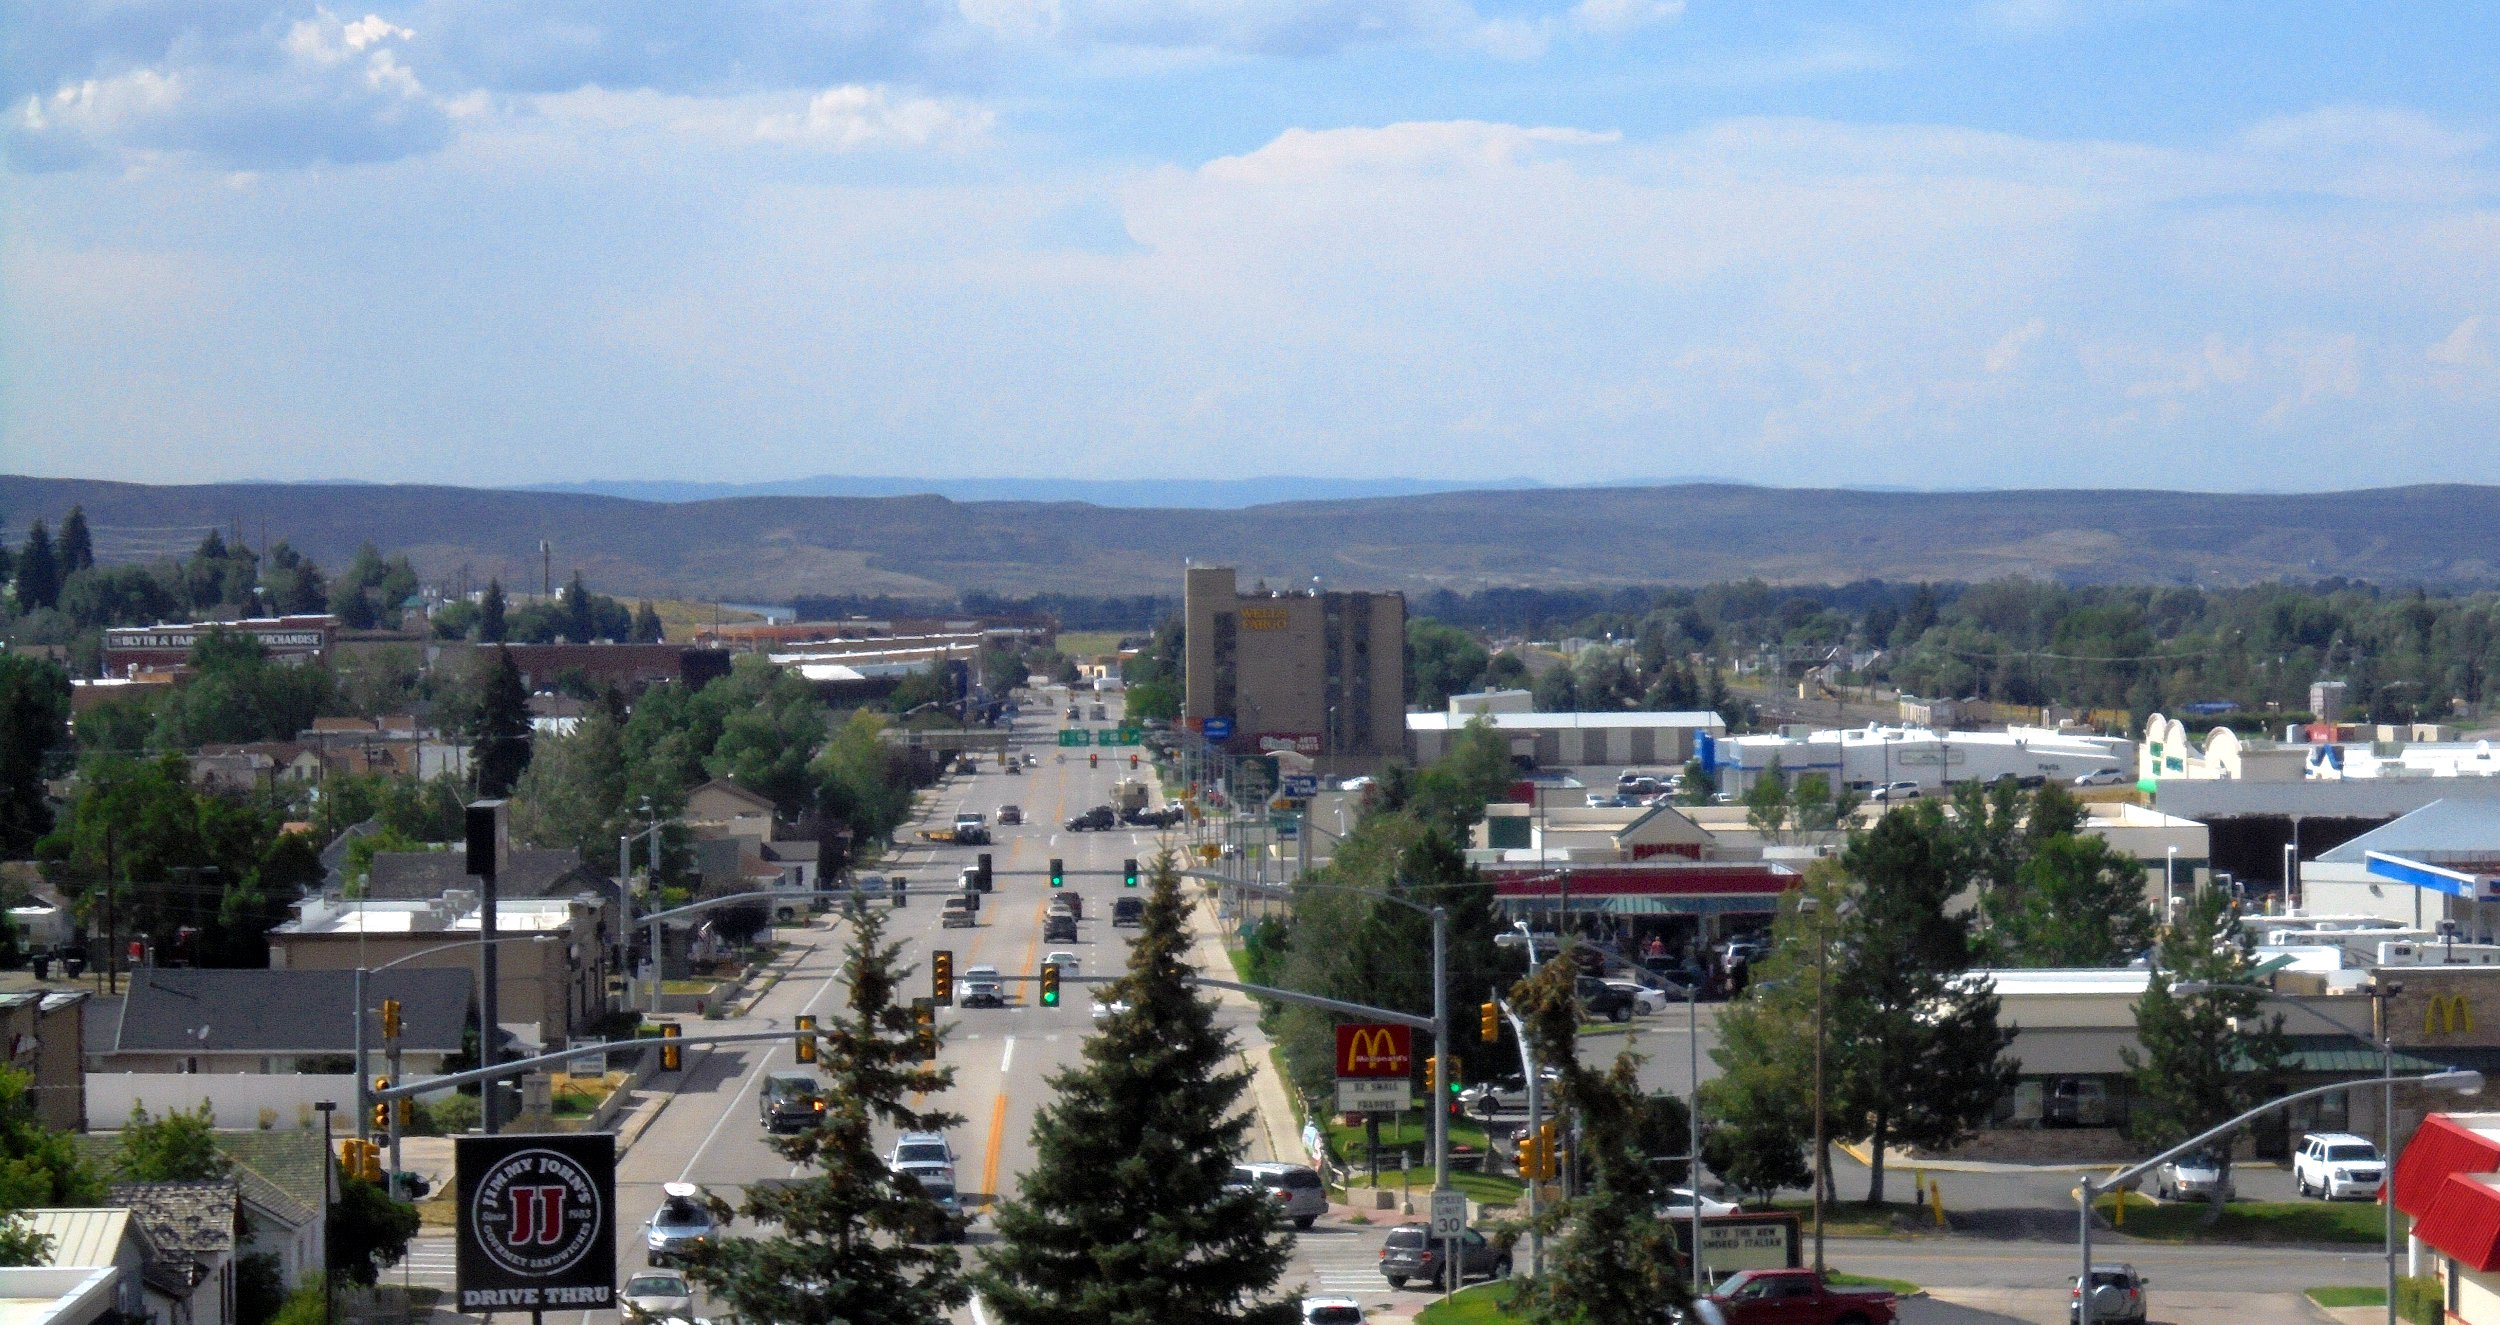 Evanston Wyoming Wikipedia